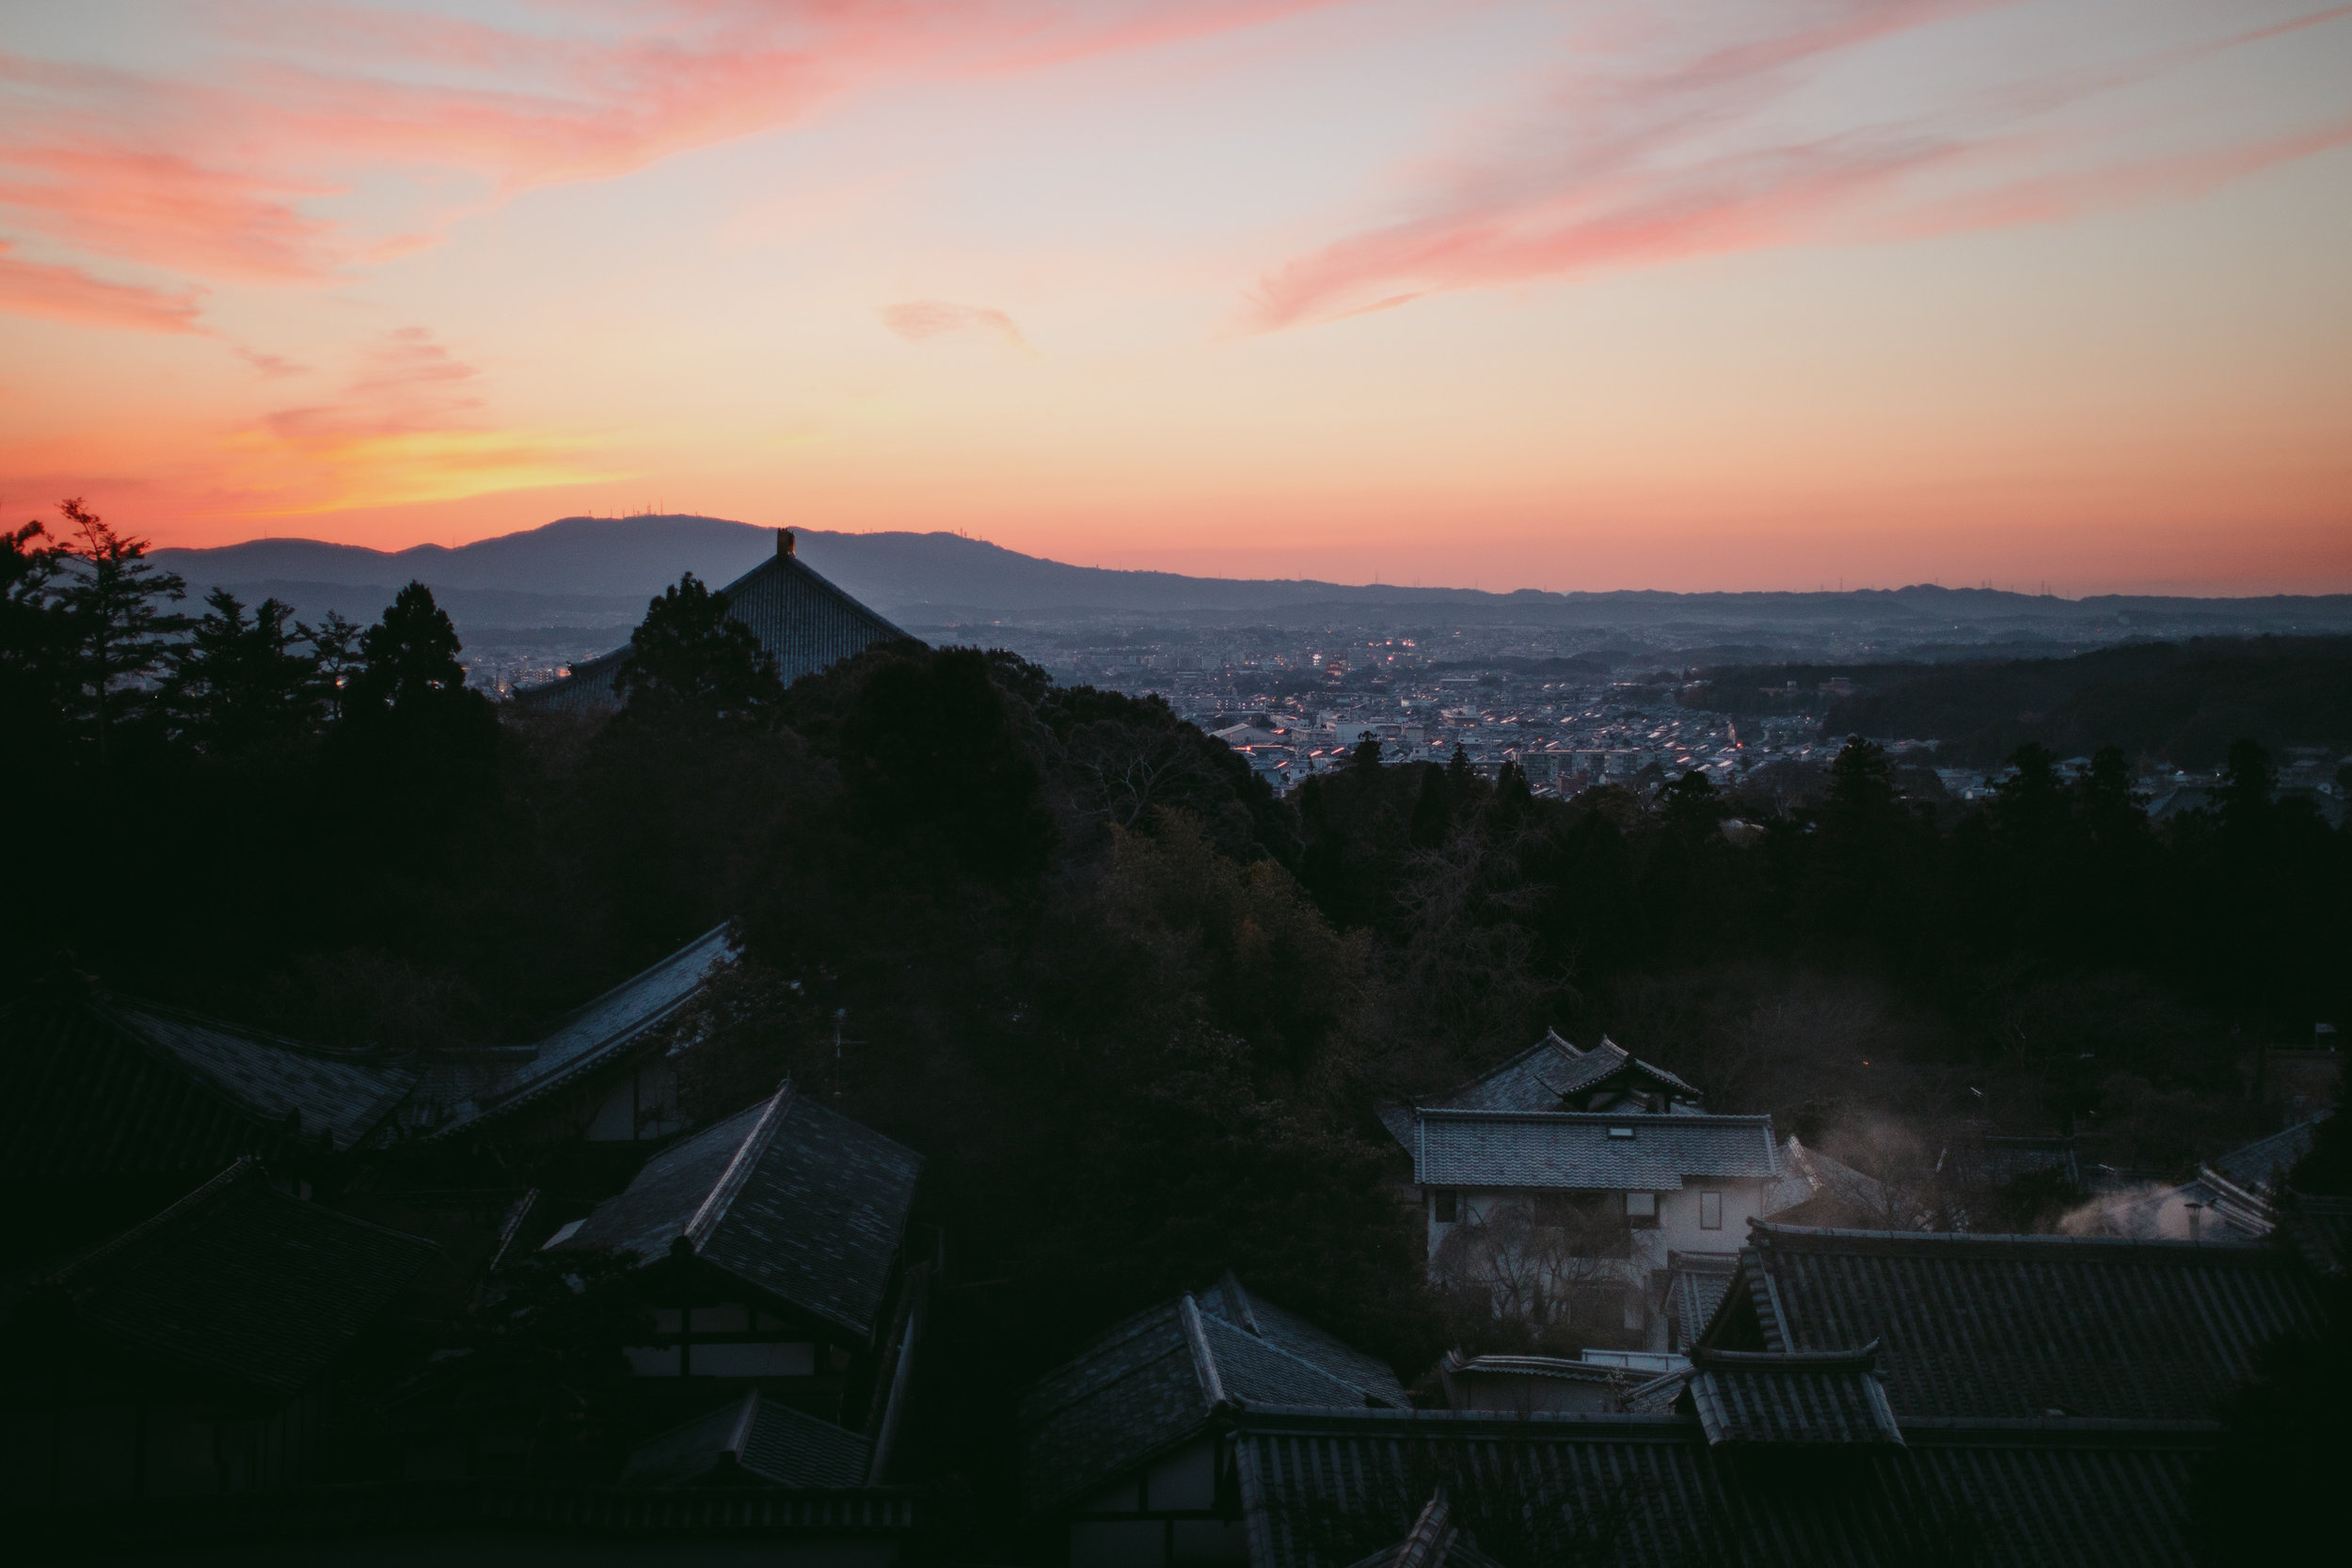 MikeSeehagel-commercial-lifestyle-travel-photography-Japan-85.jpg